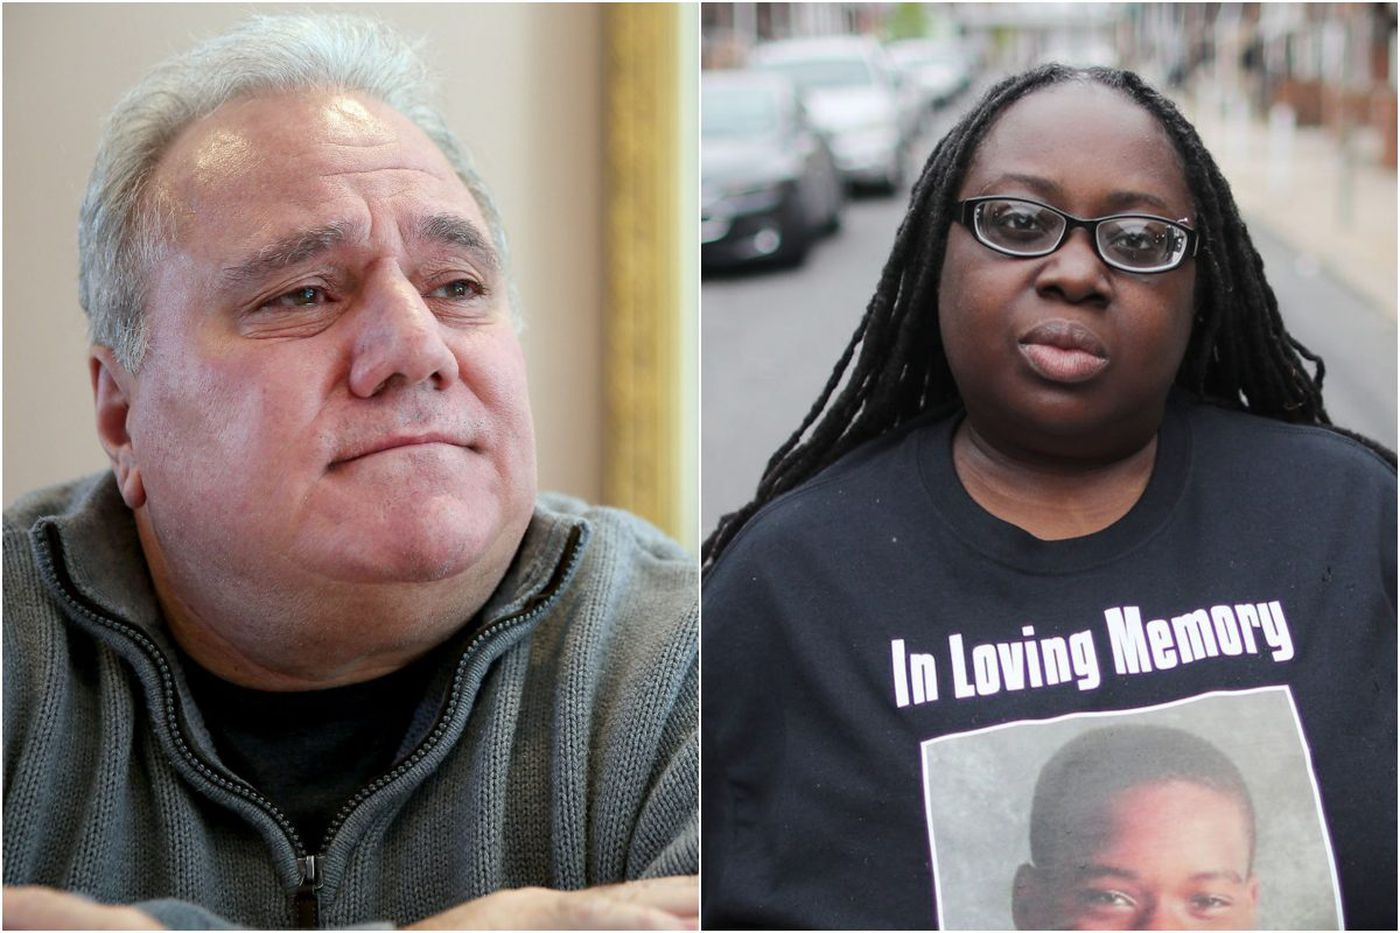 Threats, taunts, tears: Families of slain South Philly teens struggling 6 months later